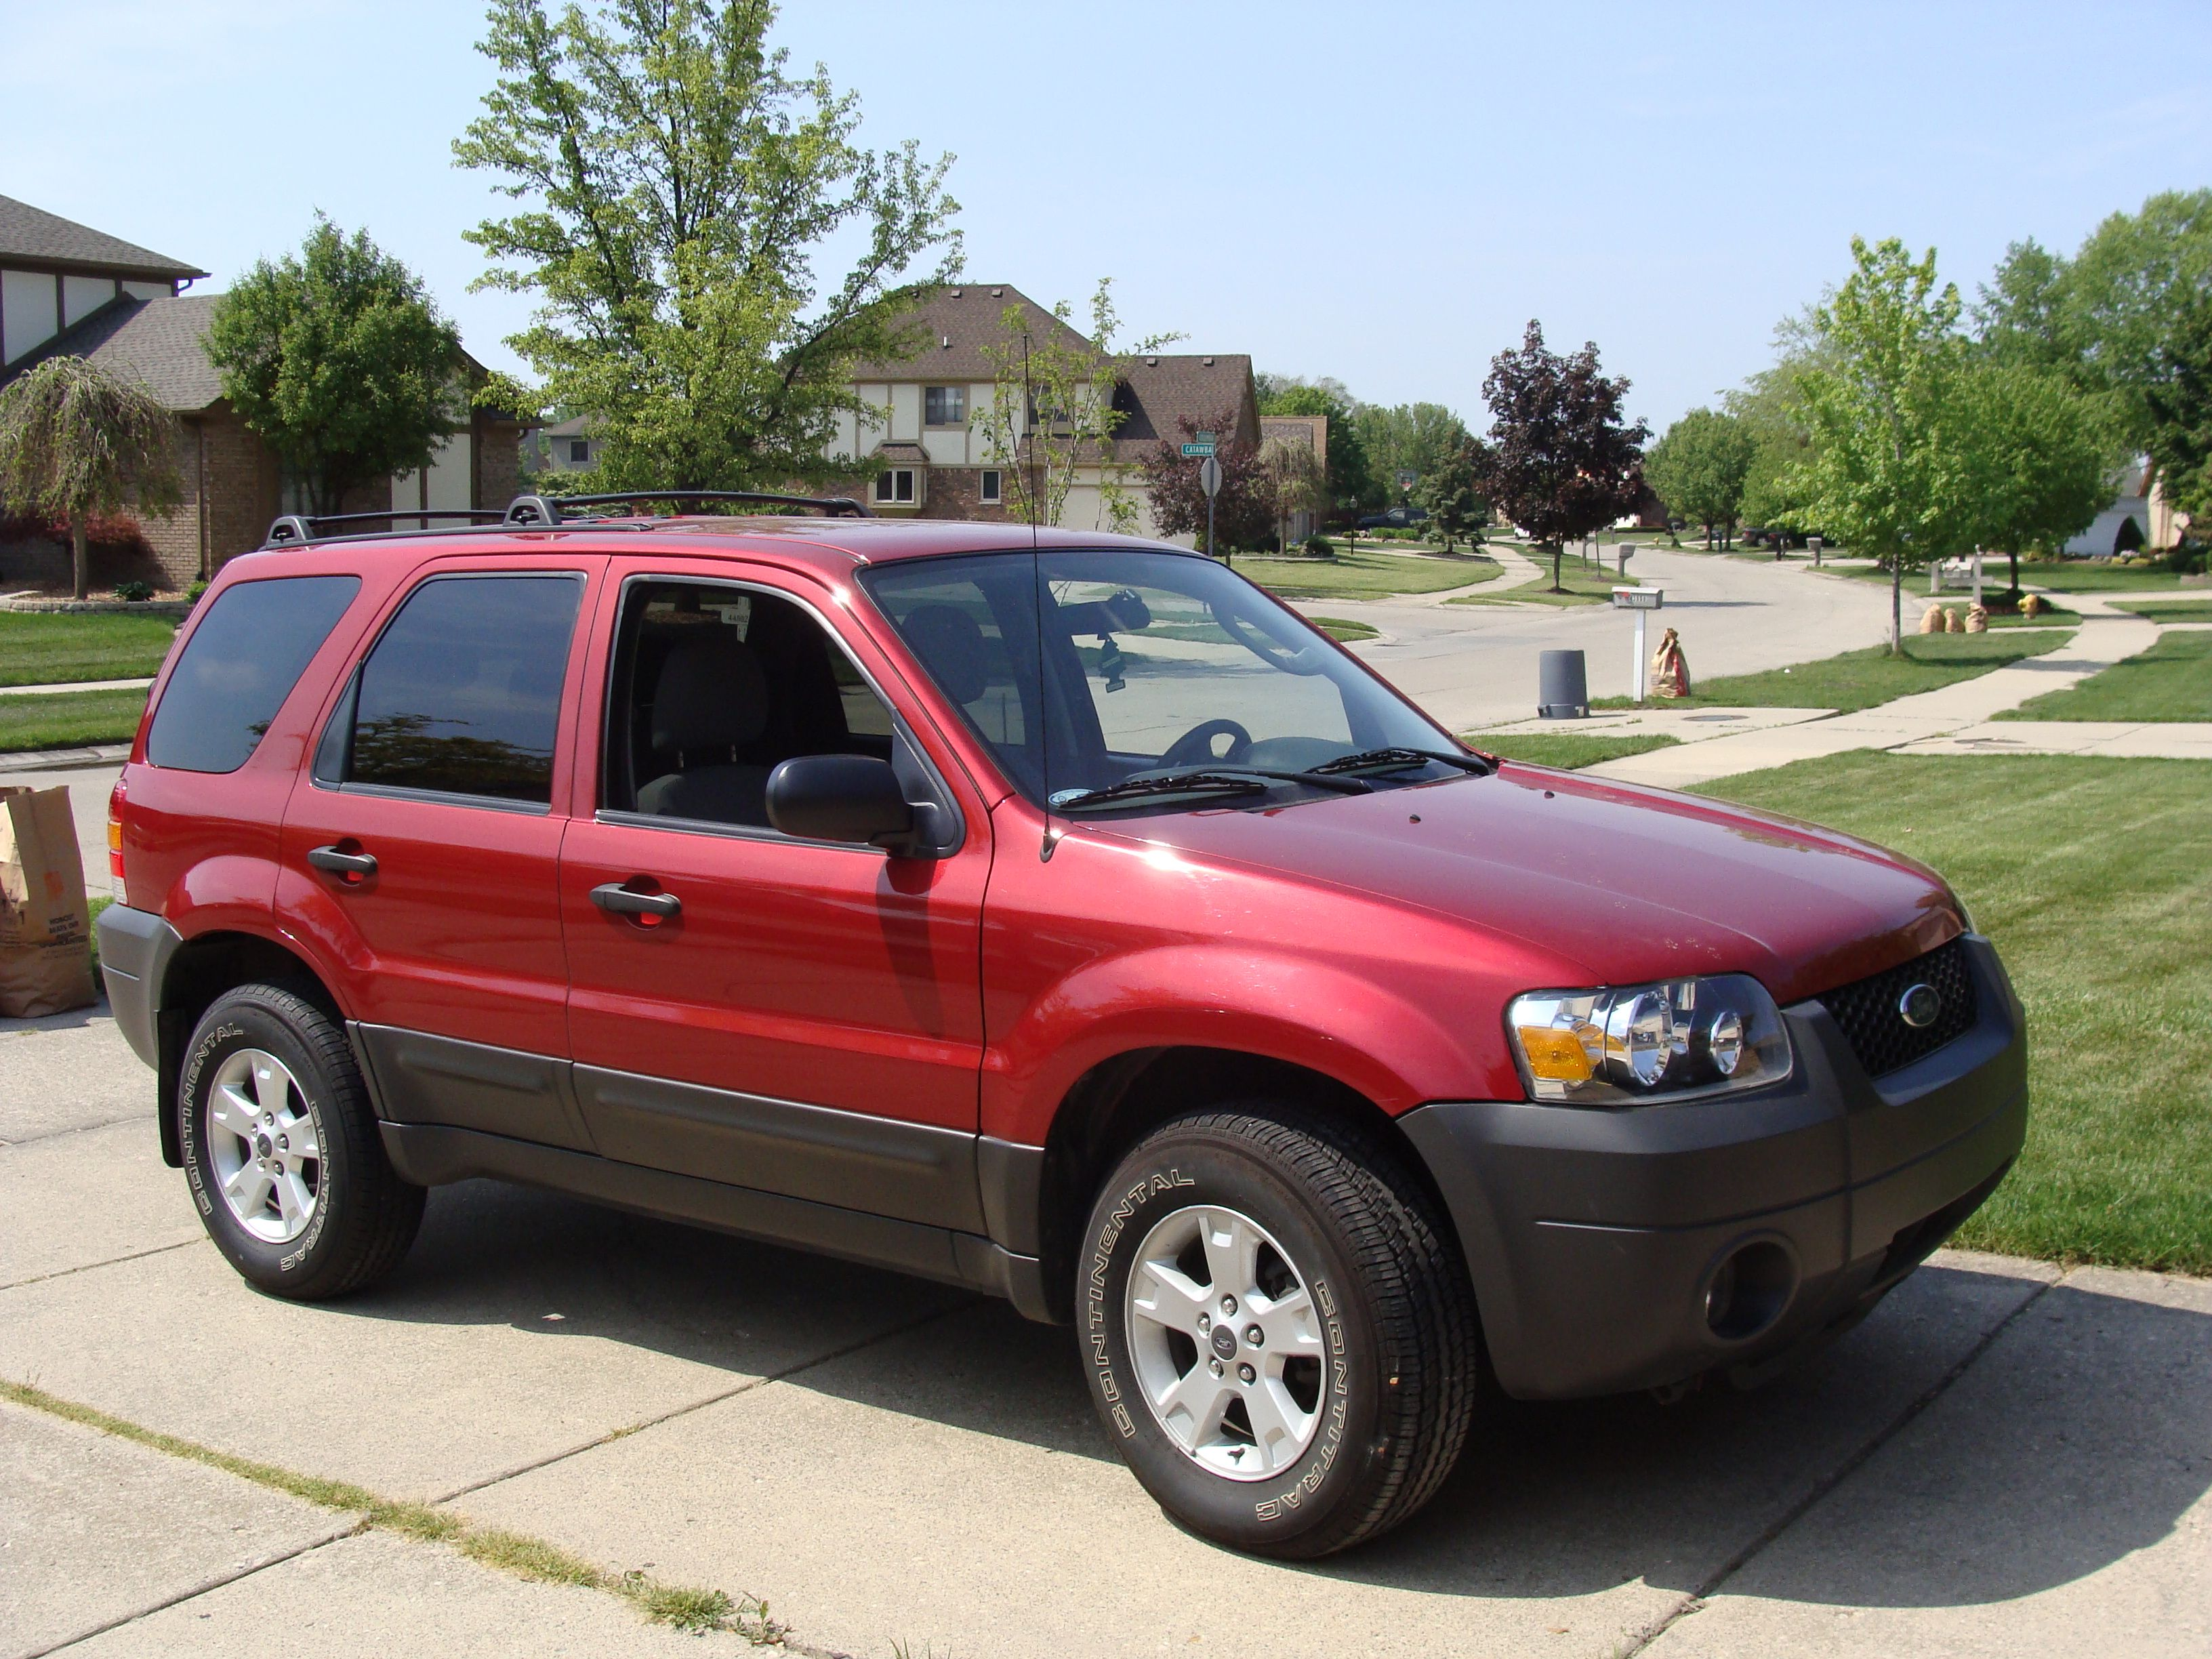 2005 Ford Escape Ford Escape Red Car Ford Maverick